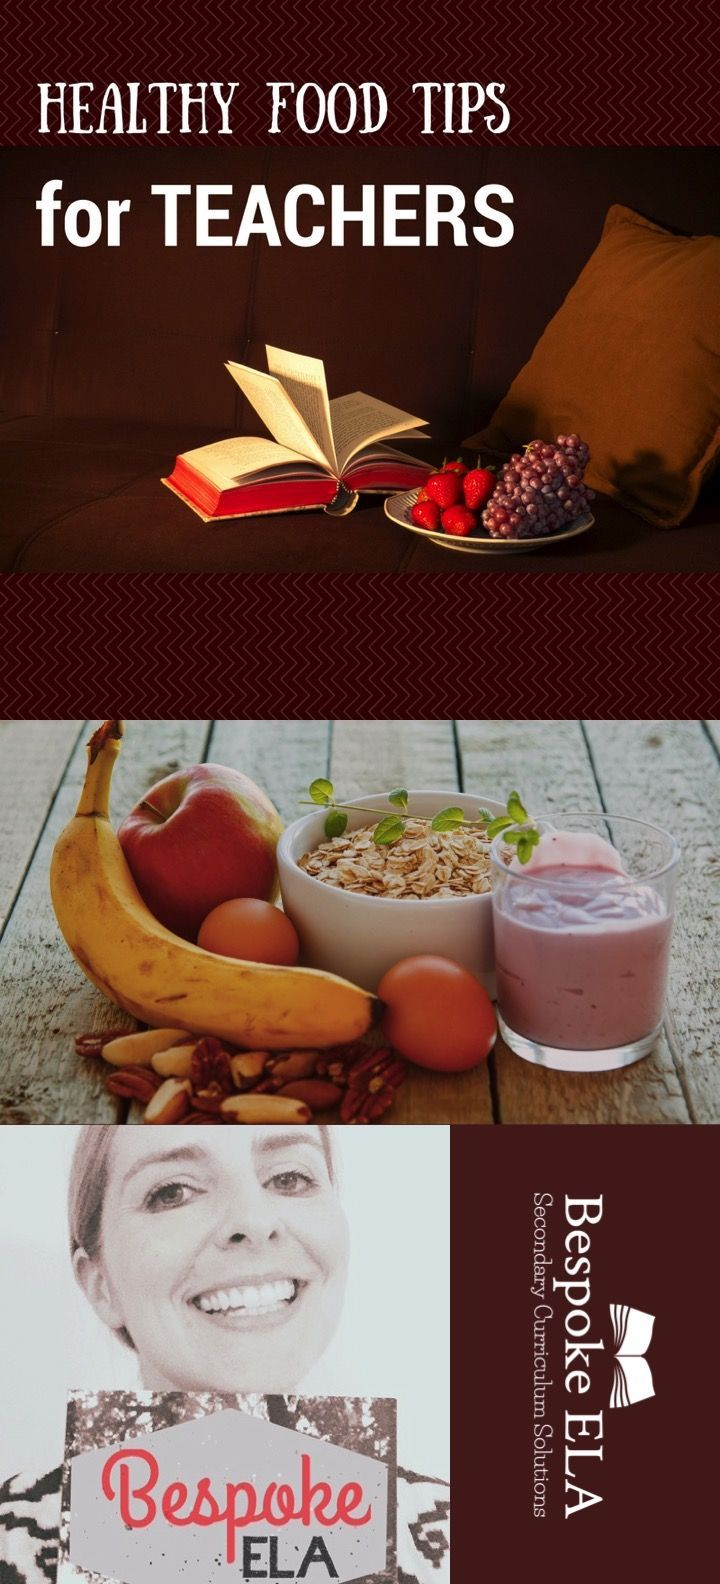 How To Eat Healthy At School: Five Tips For Teachers